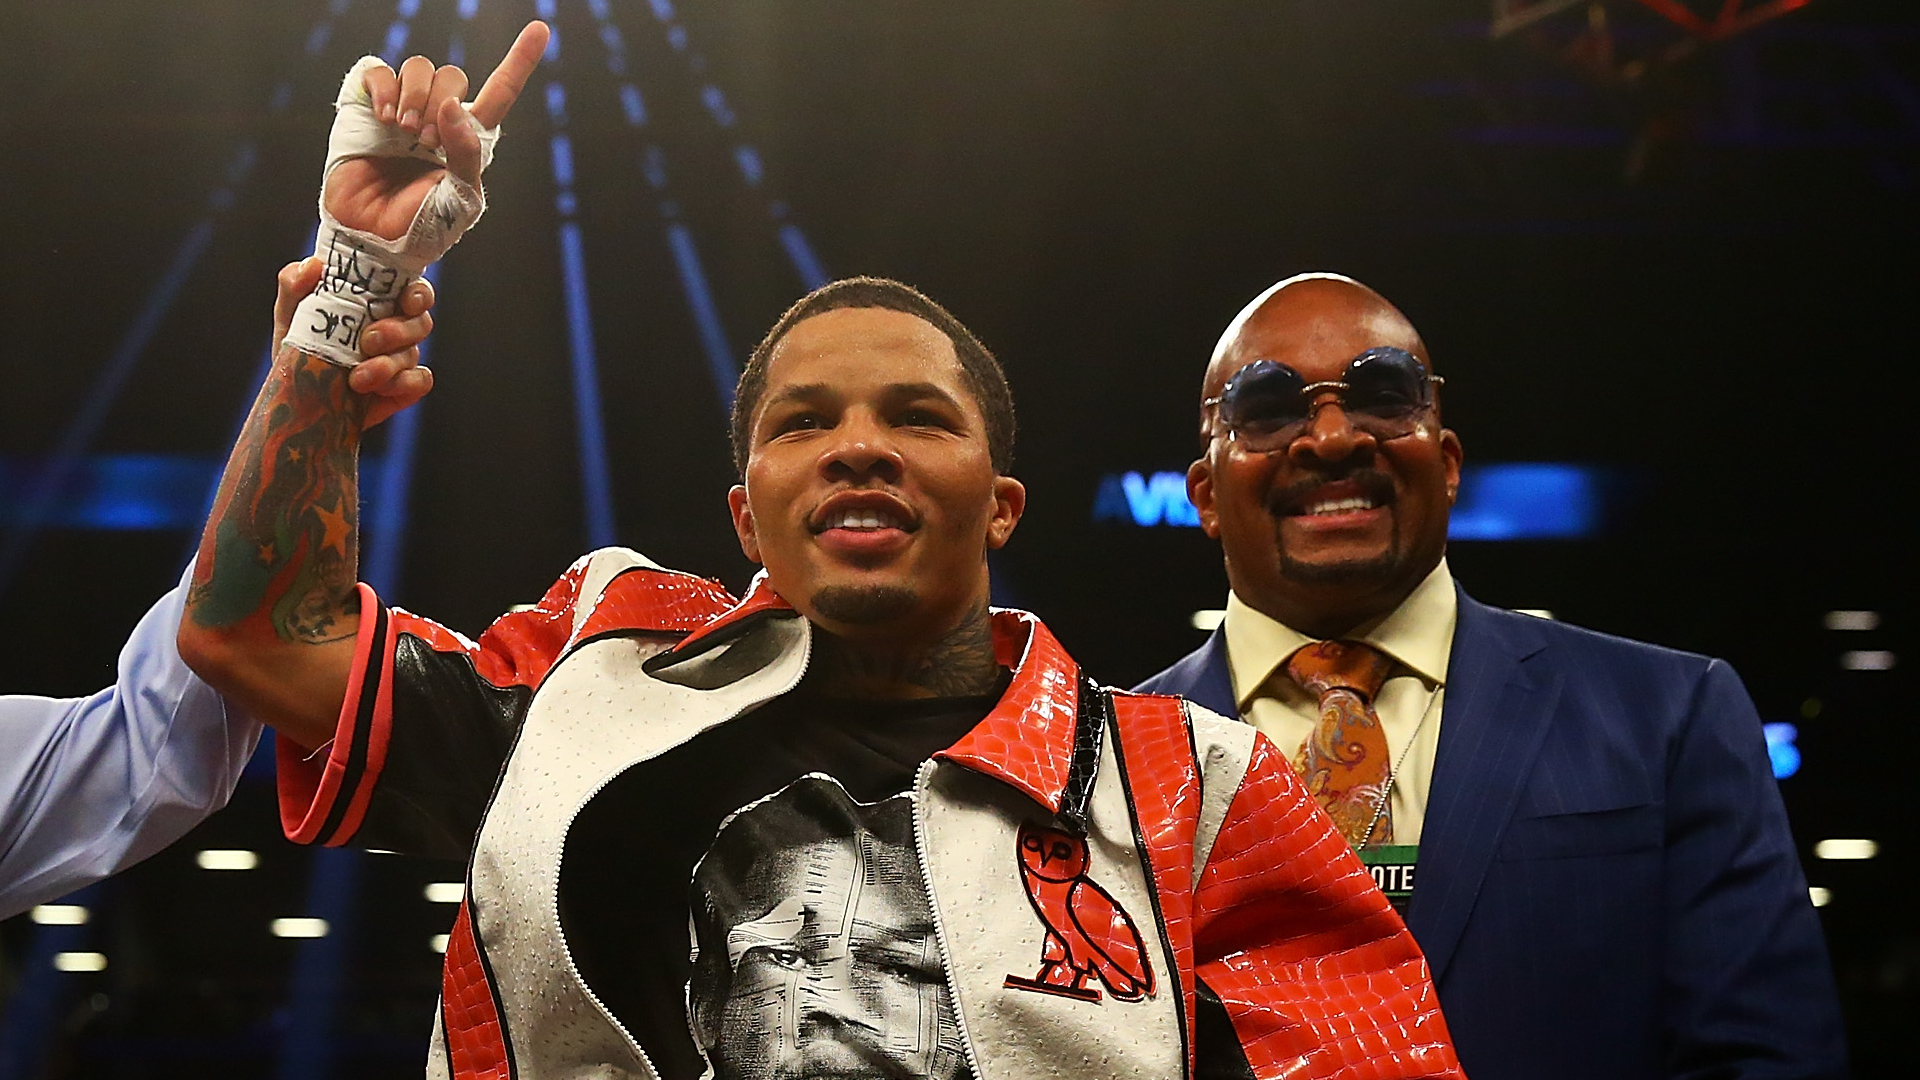 Is activity enough to make Gervonta Davis a PPV star or does he need a marquee opponent?